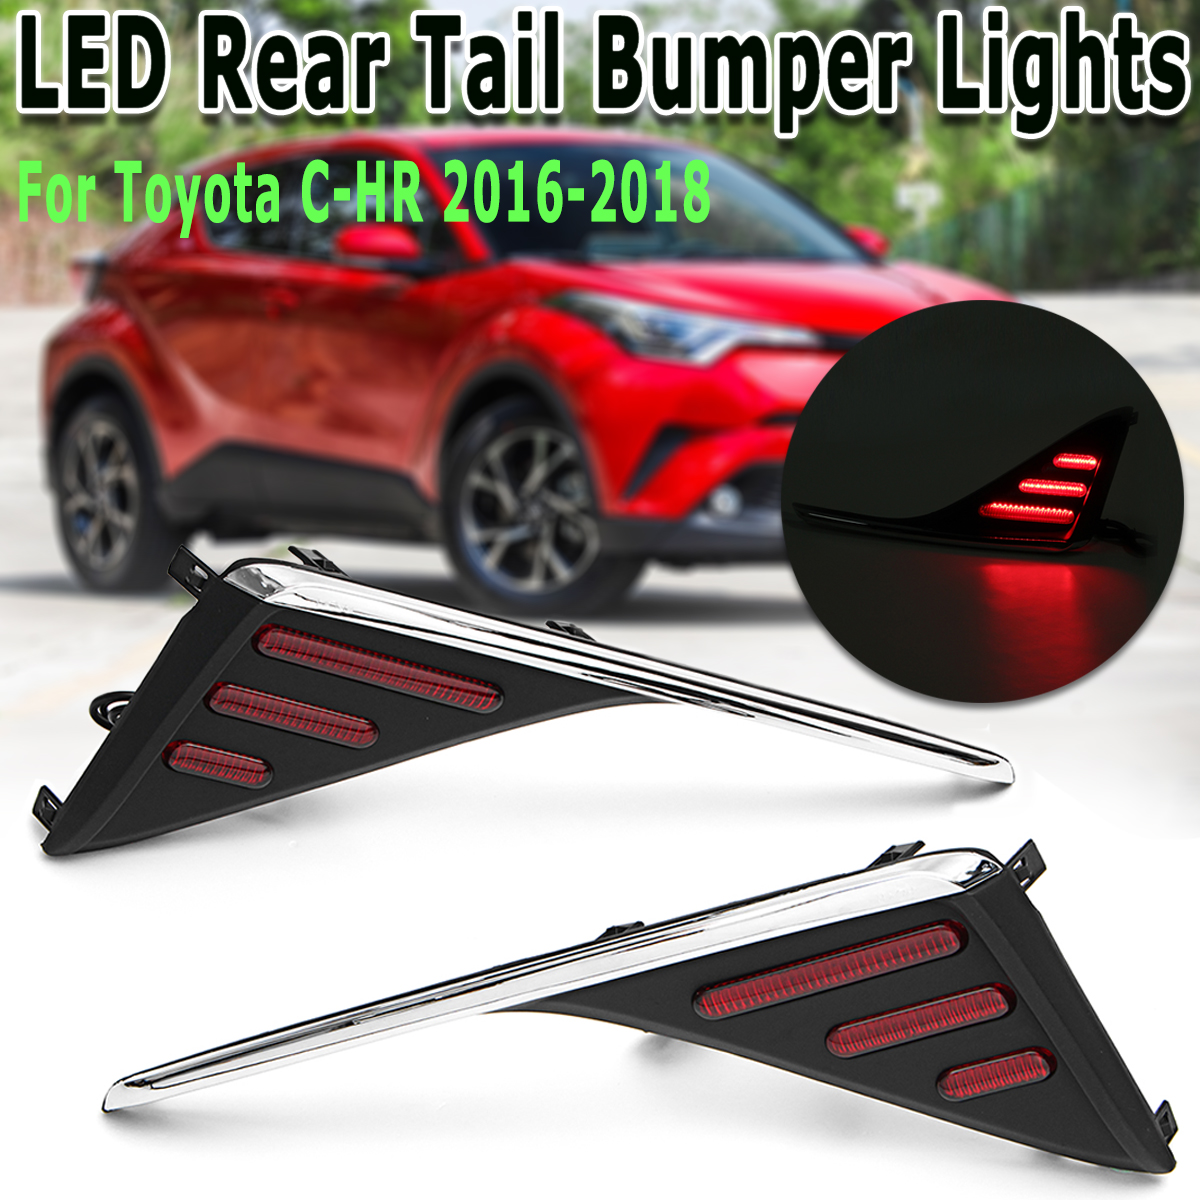 2Pcs LED Rear Fog Lights Turn Signal Lamps Tail Trunk Bumper Lights Brake Stop Light Sets Fit for Toyota C-HR CHR 16-18 цена